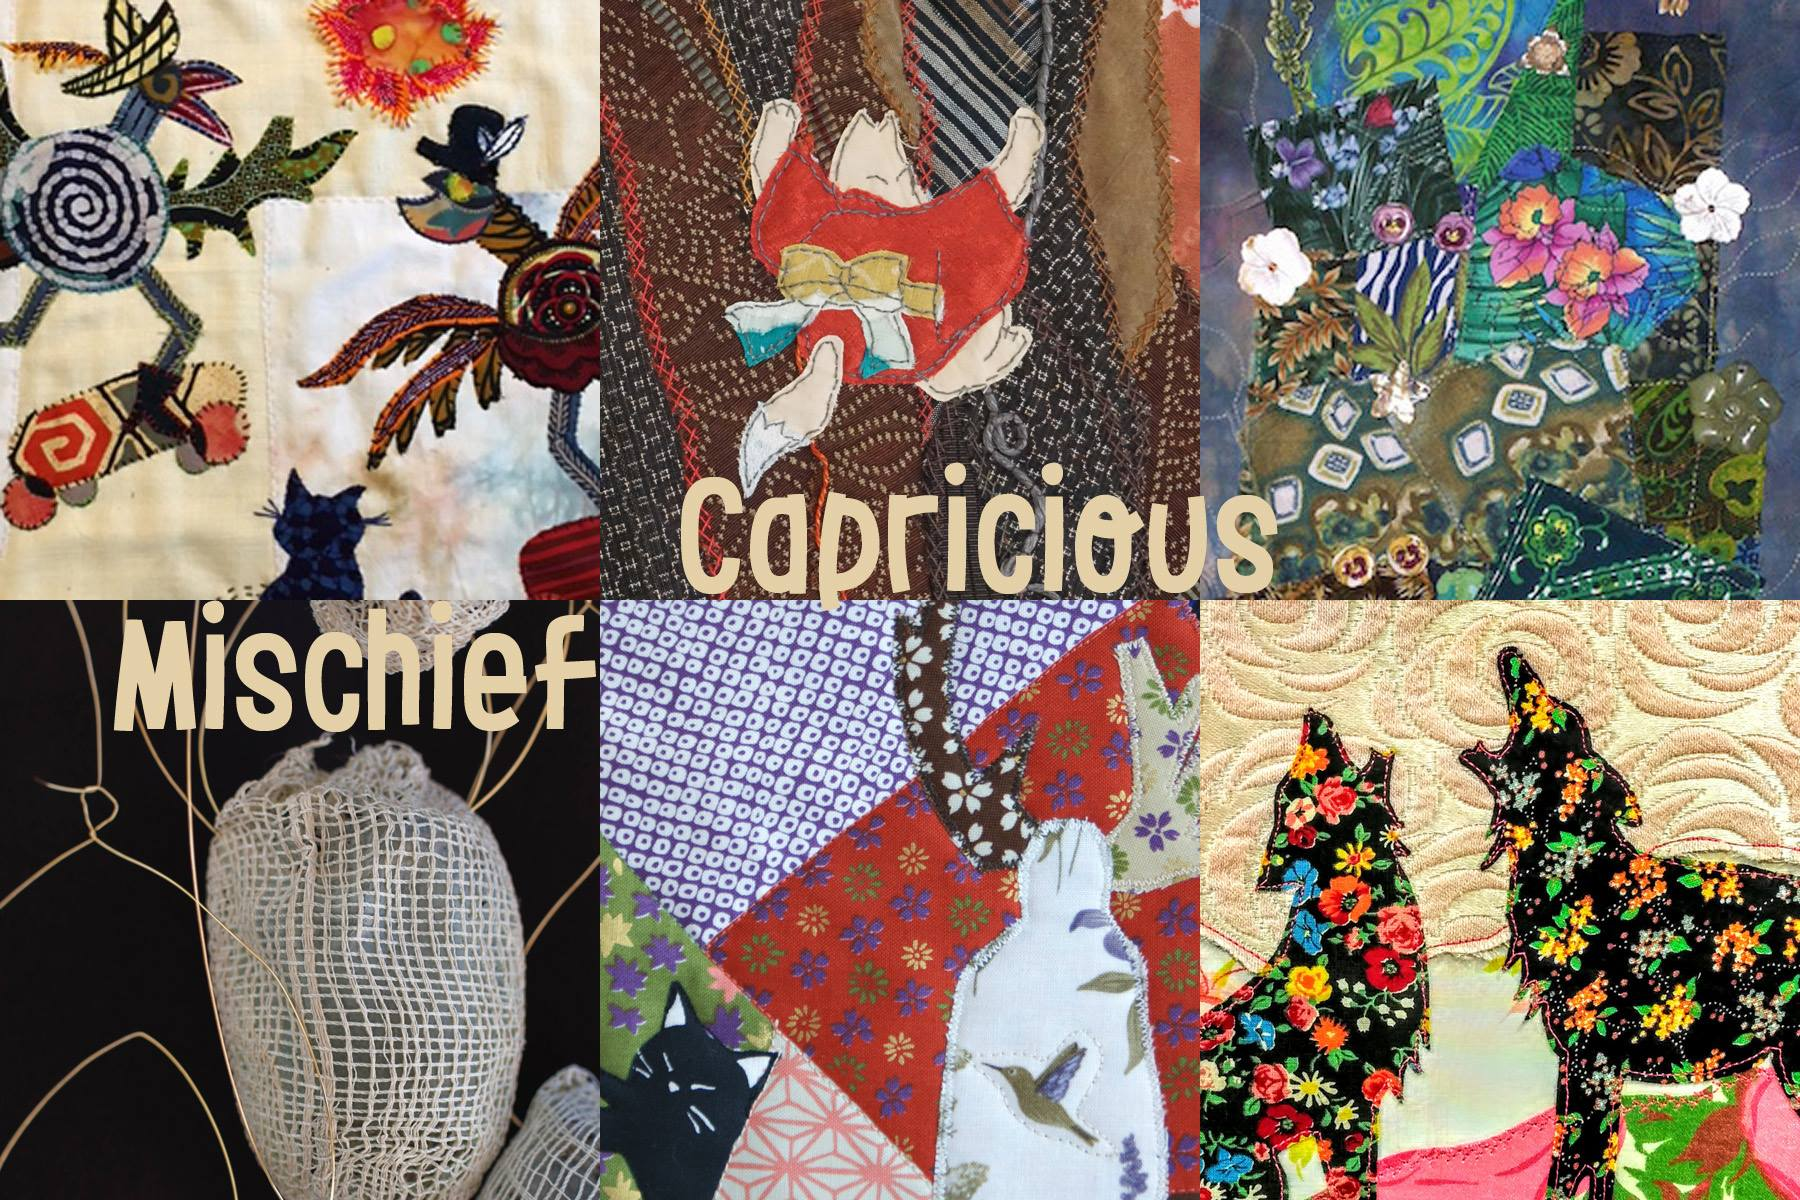 Capricious Mischief-Hosted by Chaffey Community Museum of Art